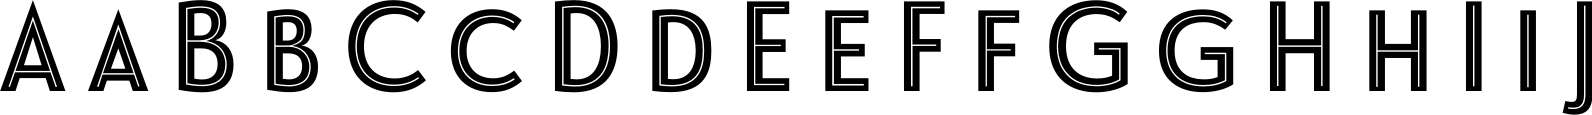 Le Havre Layers Centerline Reversed Font